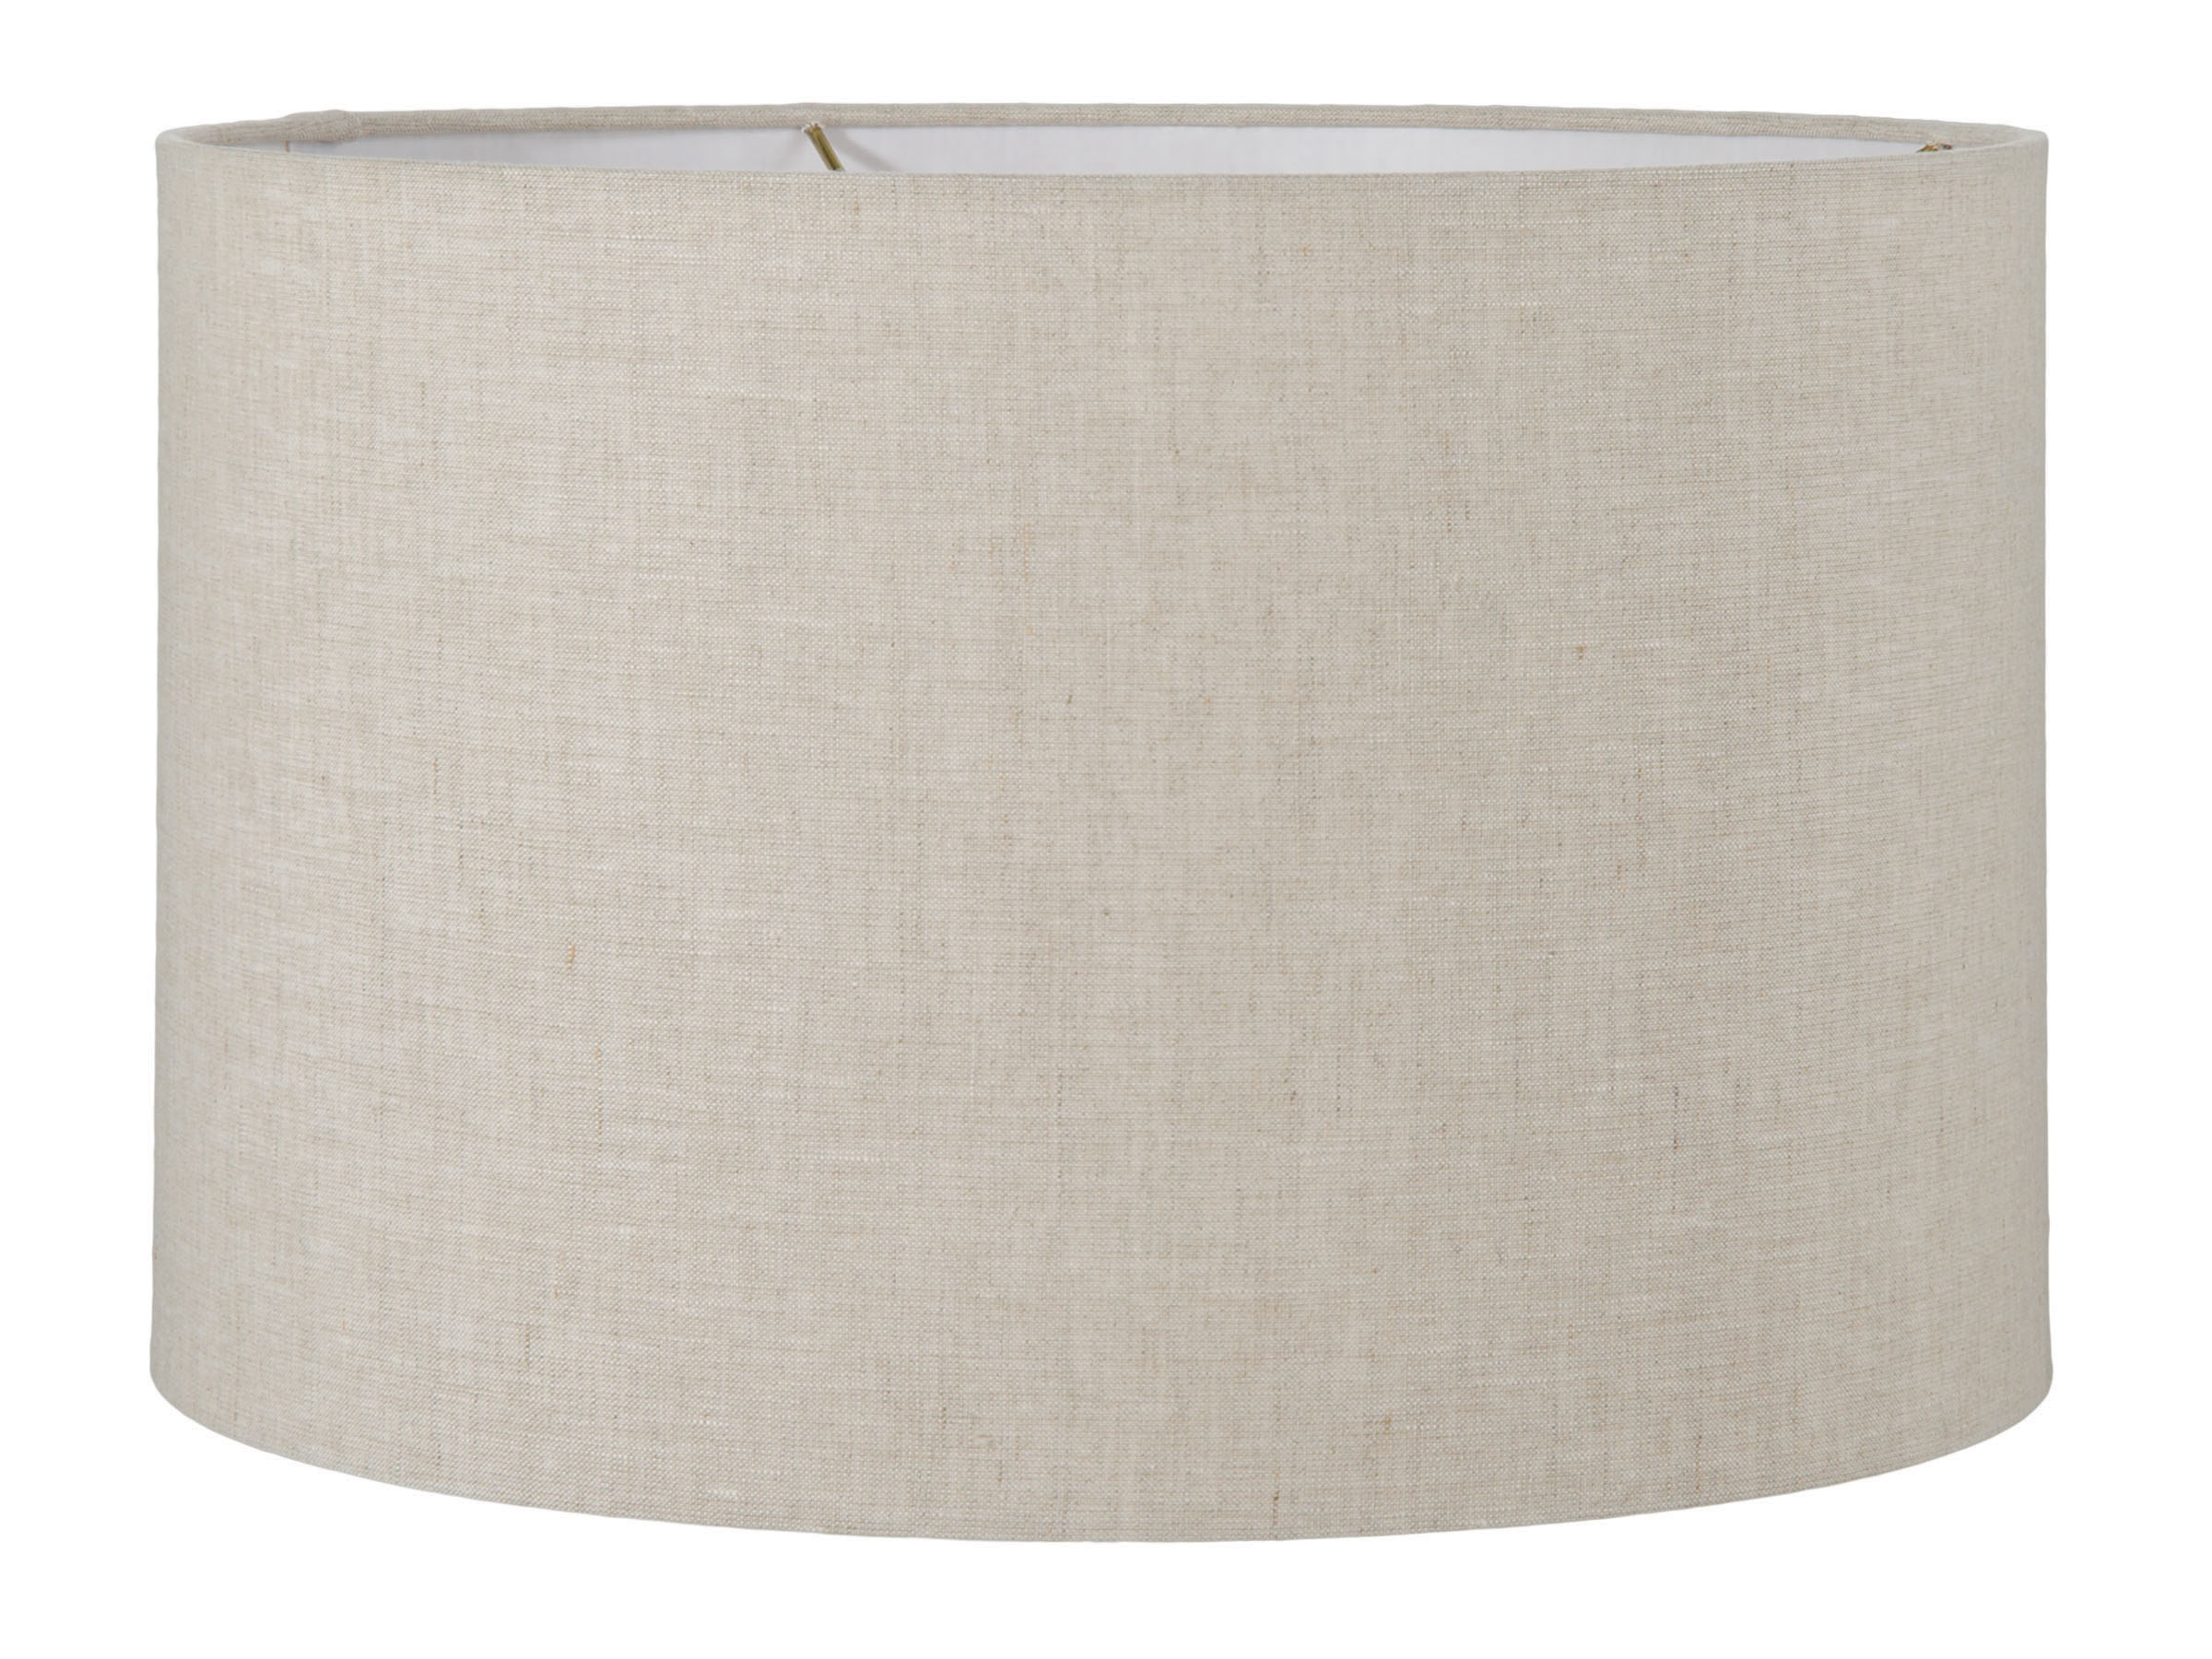 Natural Linen Drum Lampshade 05641a B Amp P Lamp Supply